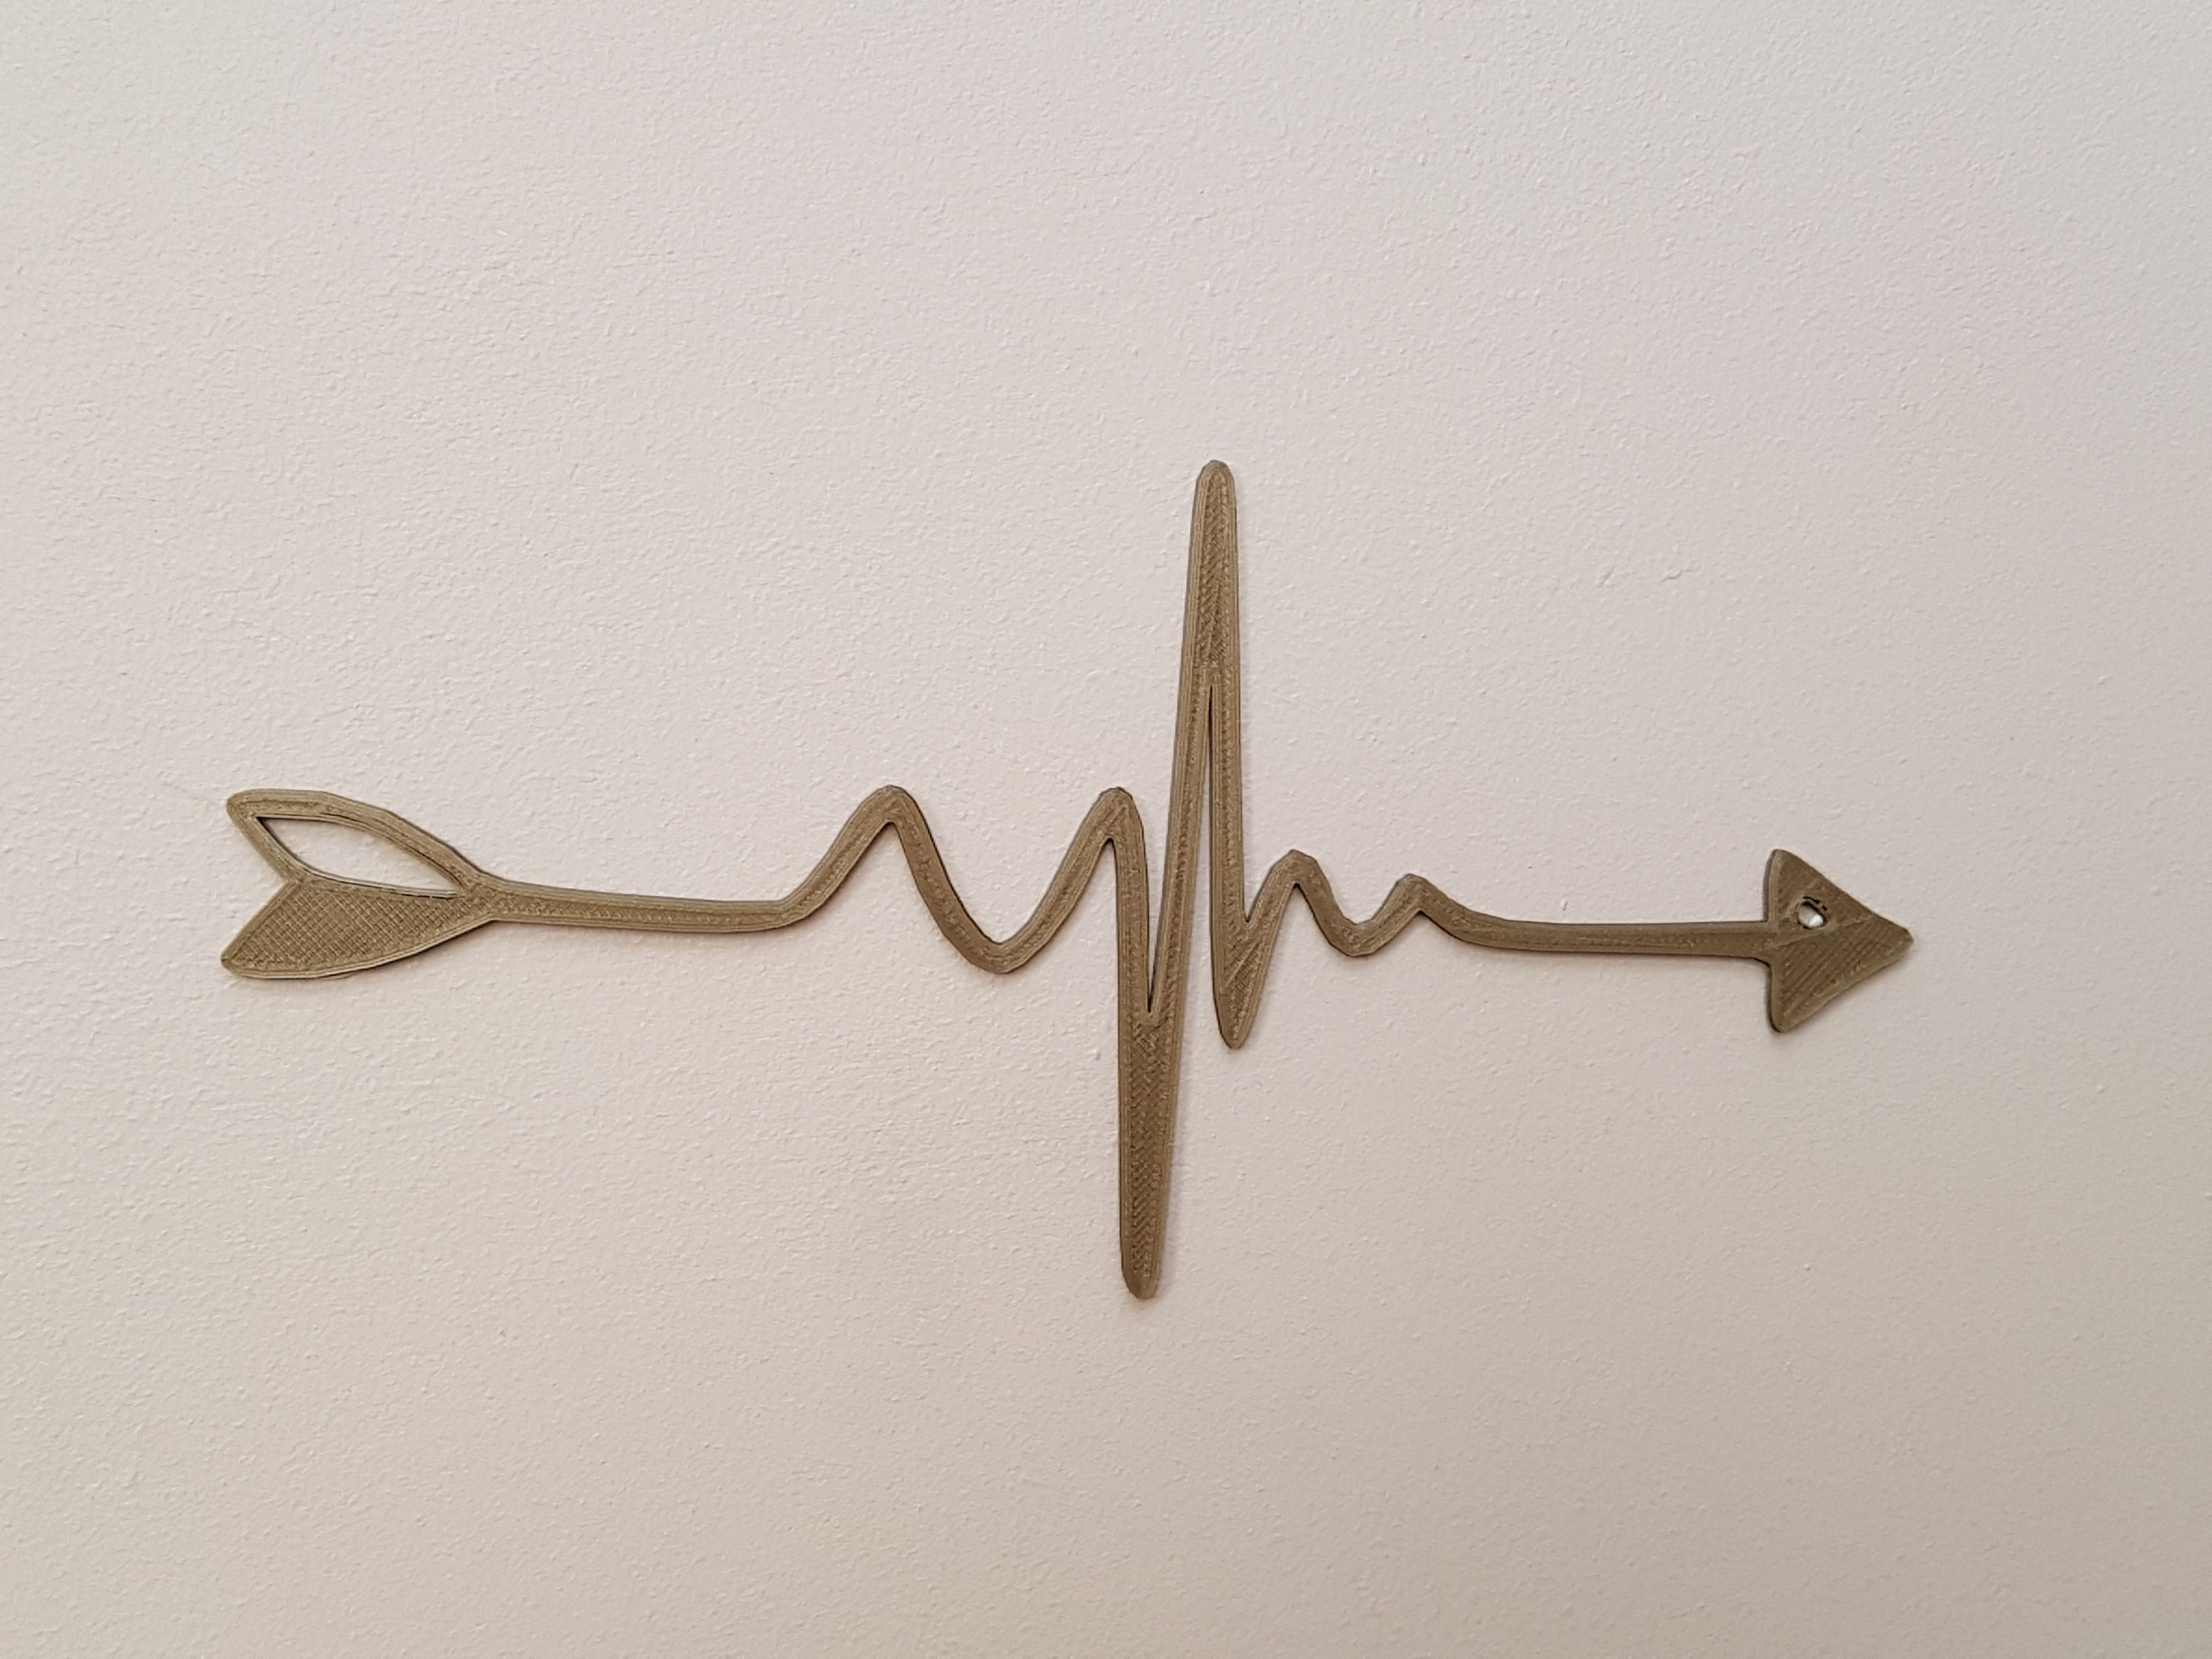 20190530_145004.jpg Download STL file my heartbeat = 4 heart lines • 3D printable object, catf3d